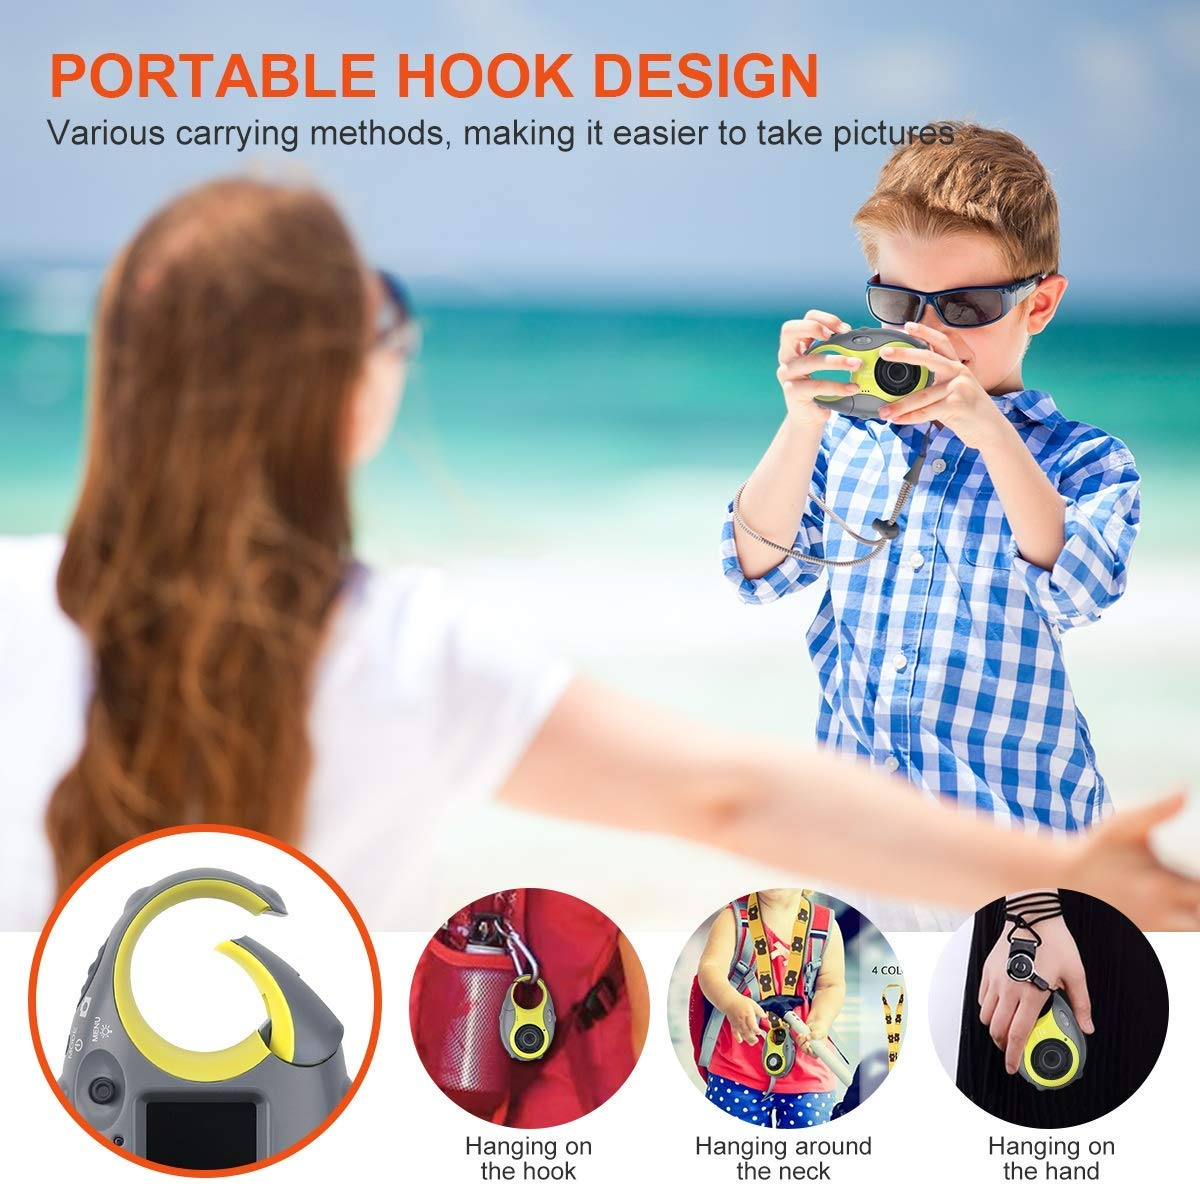 Kids Camera, Digital Camera for Children, 12MP HD Kids Video Camera with 1.5 Inch LCD Screen, 4x Digital Zoom, Flash Light, Rechargeable Battery and 8GB SD Card, Best Holiday Gift for Boys and Girls by LDF (Image #5)